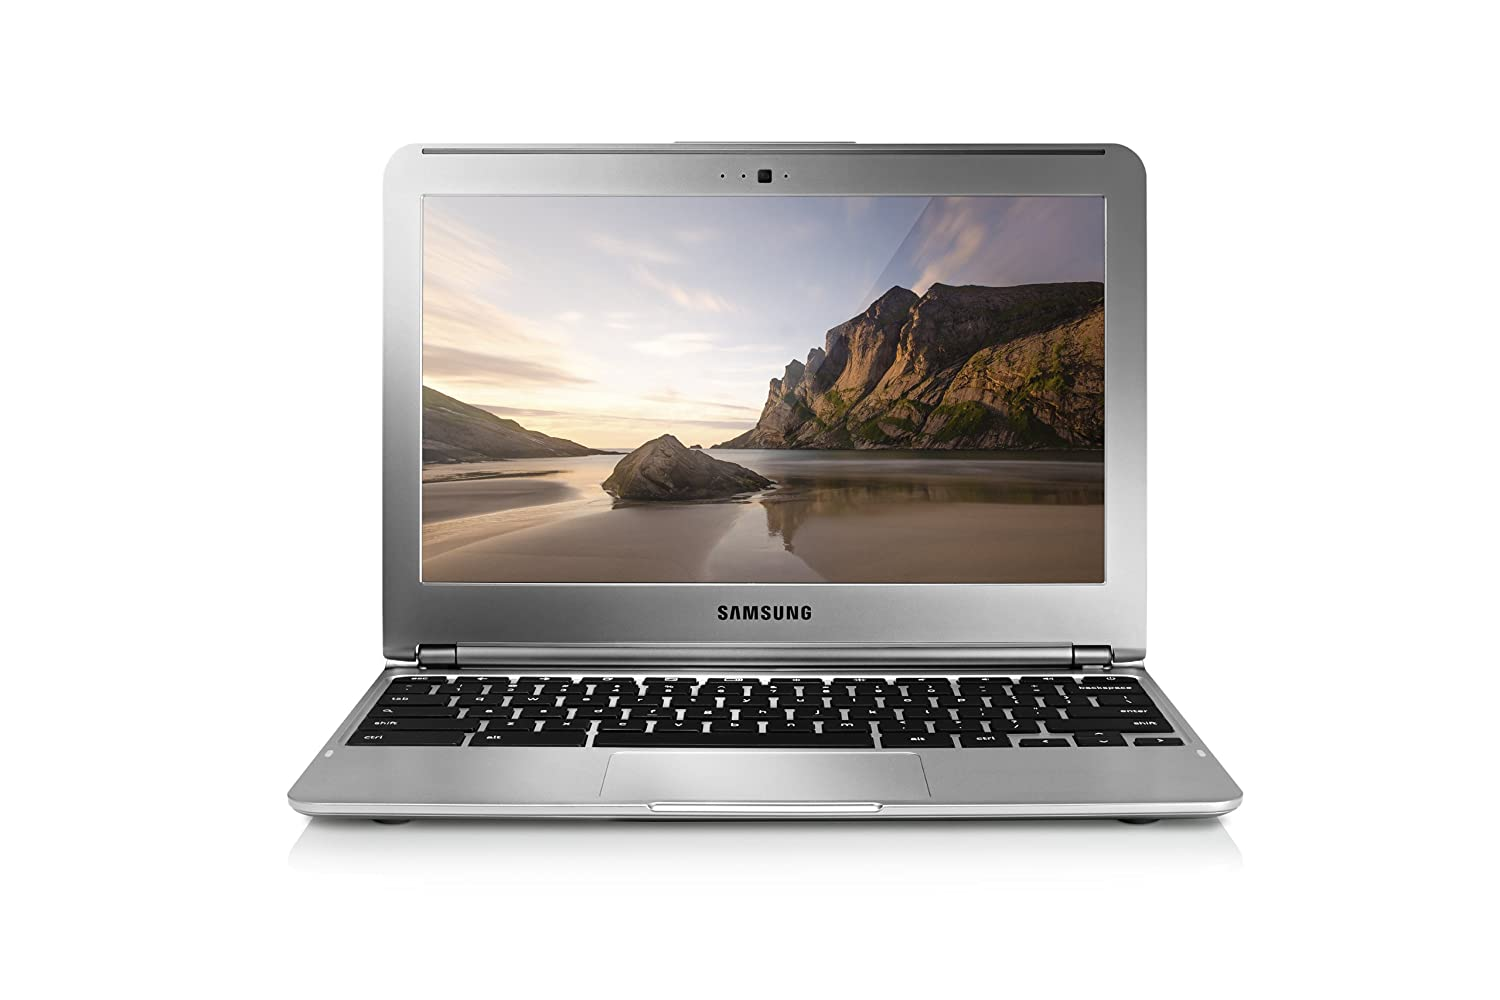 81H DO3qX0L. SL1500  Six Great Laptops Under $500